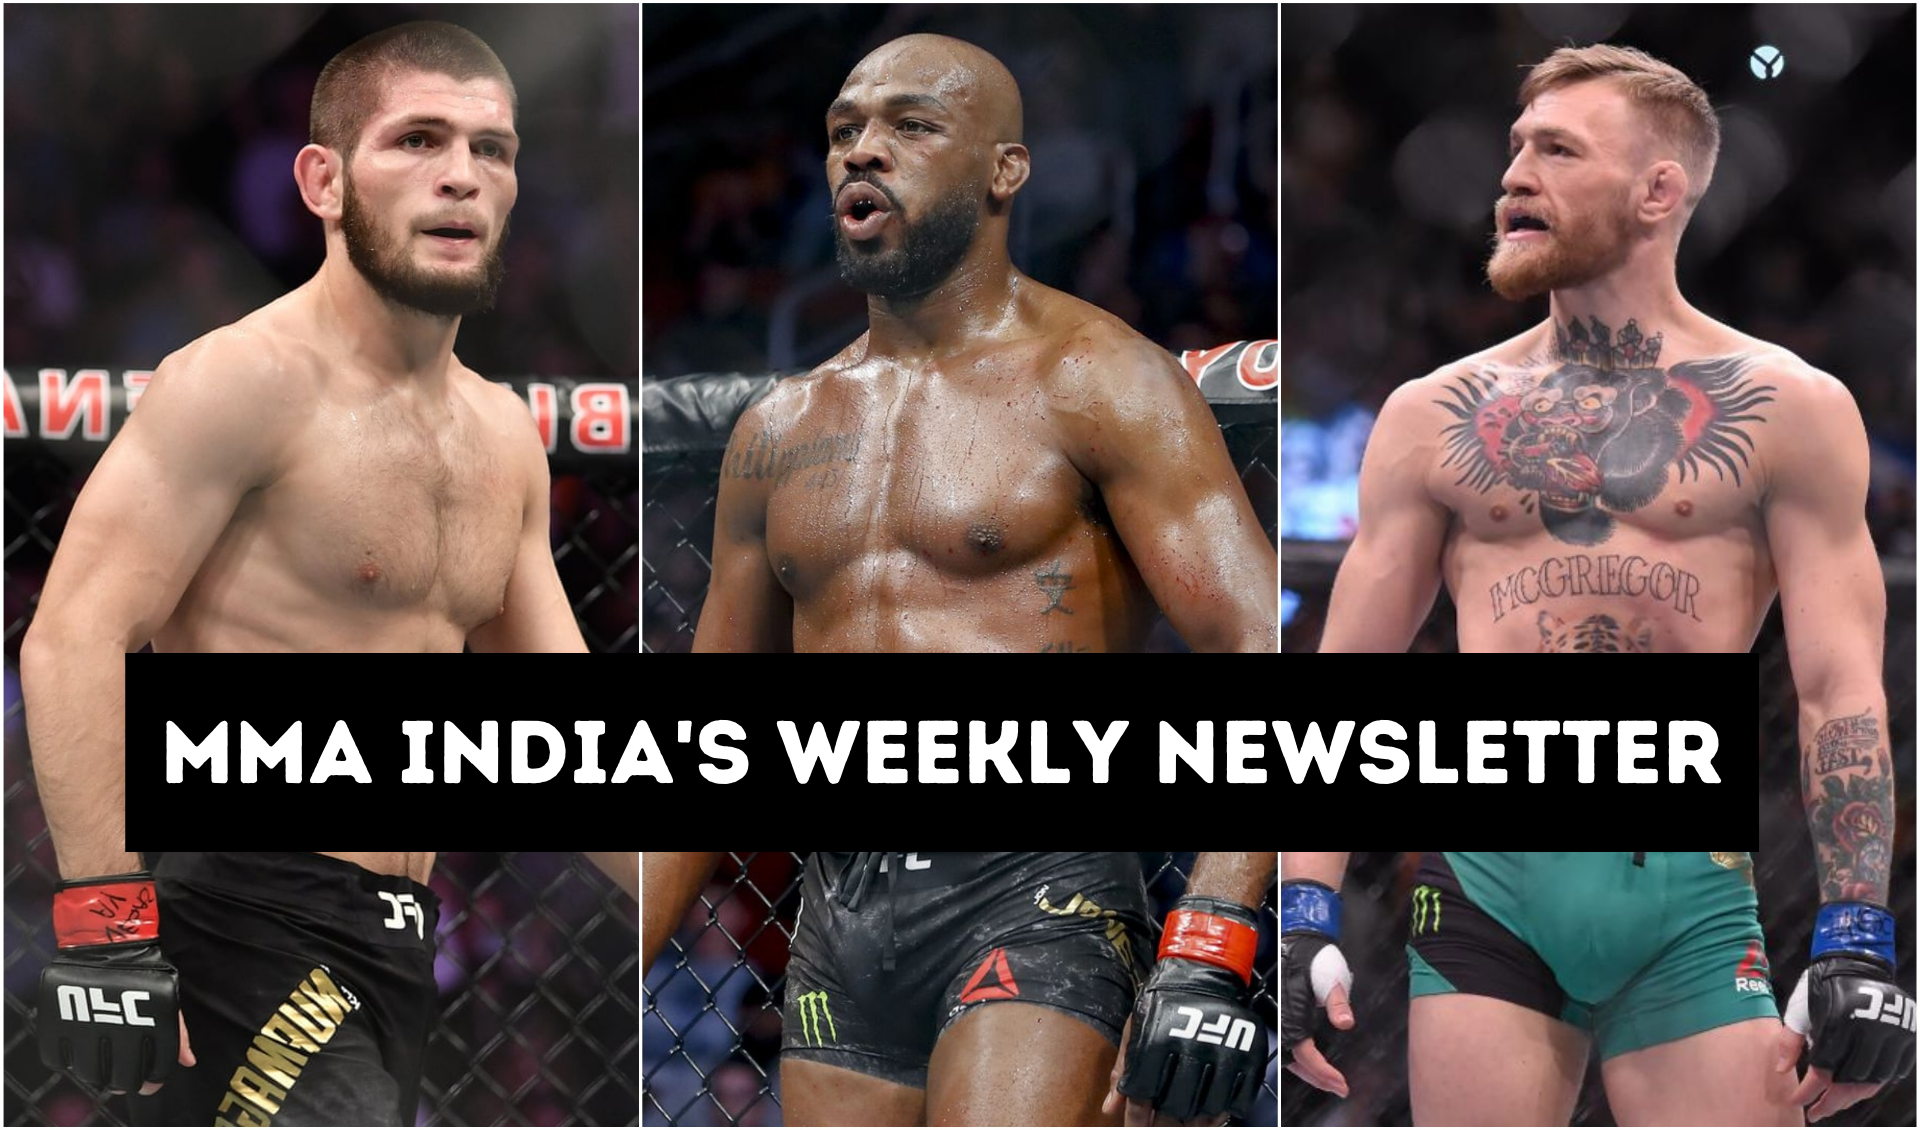 MMA India's Weekly Roundup (21-28 June): Conor - Khabib rivalry heats up, Jones & Tyson discuss superfight and more -